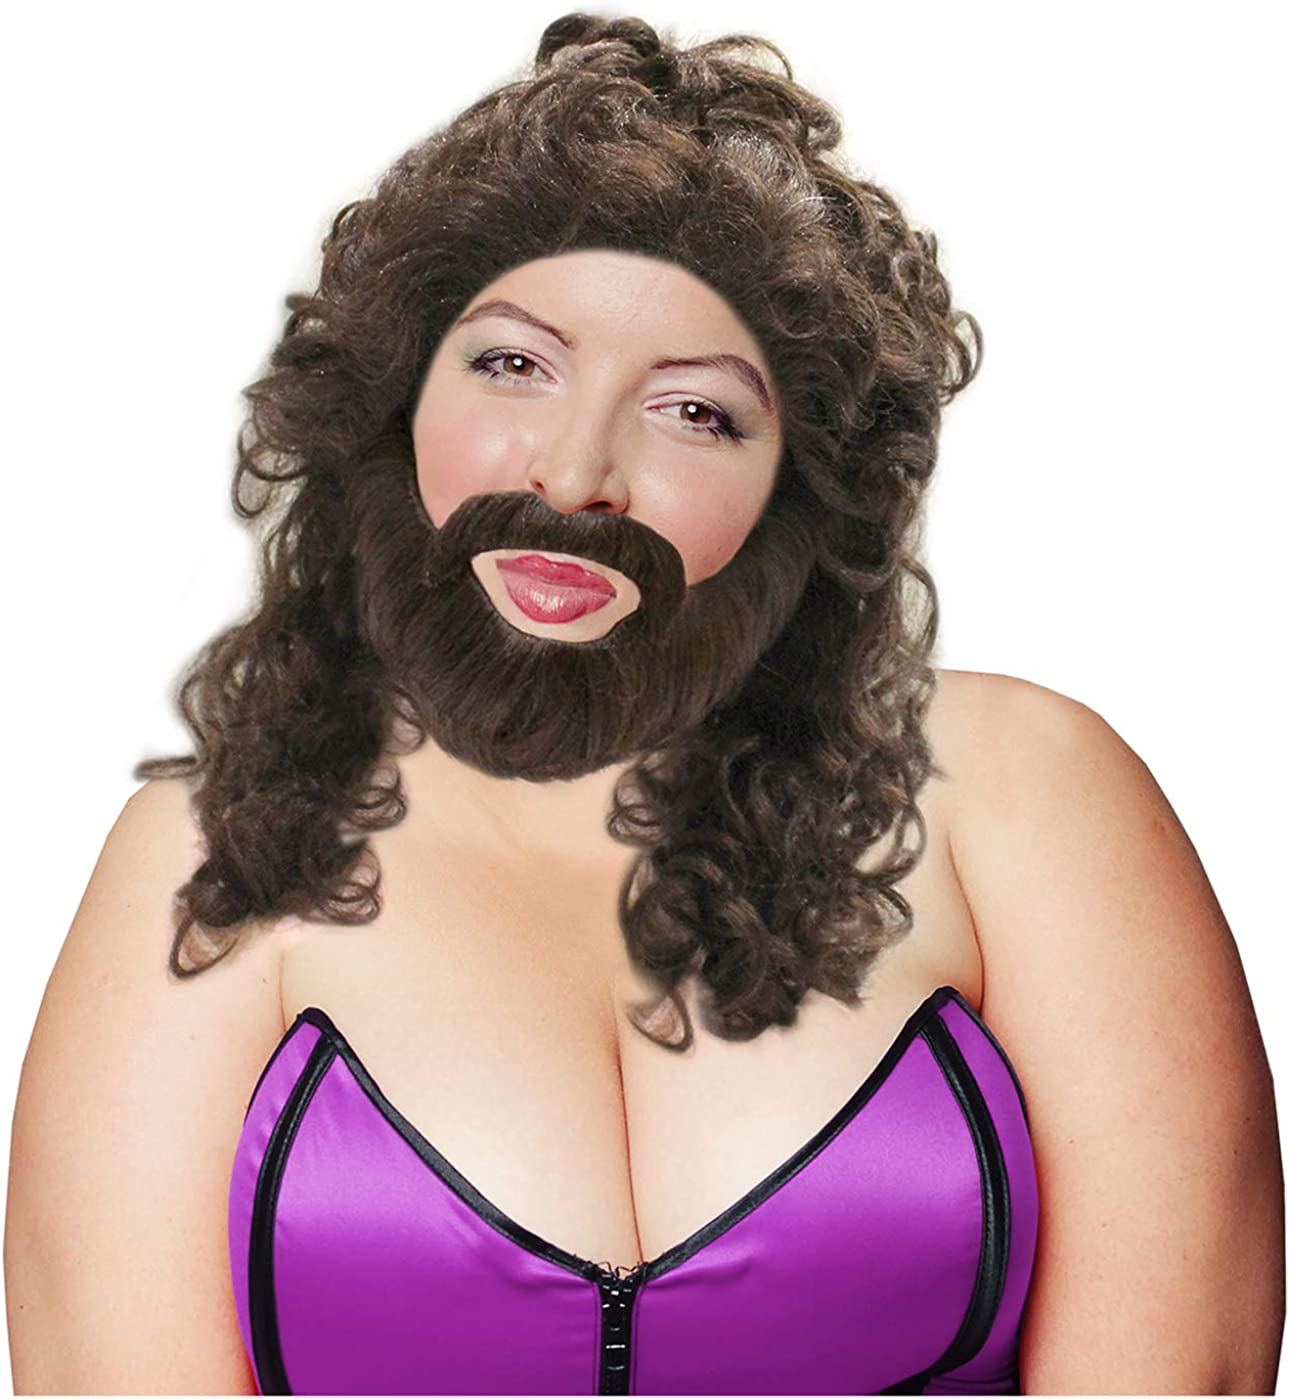 Manufacturer regenerated product Costume Adventure Bearded Lady Beard Mustache Wig Same day shipping Se and